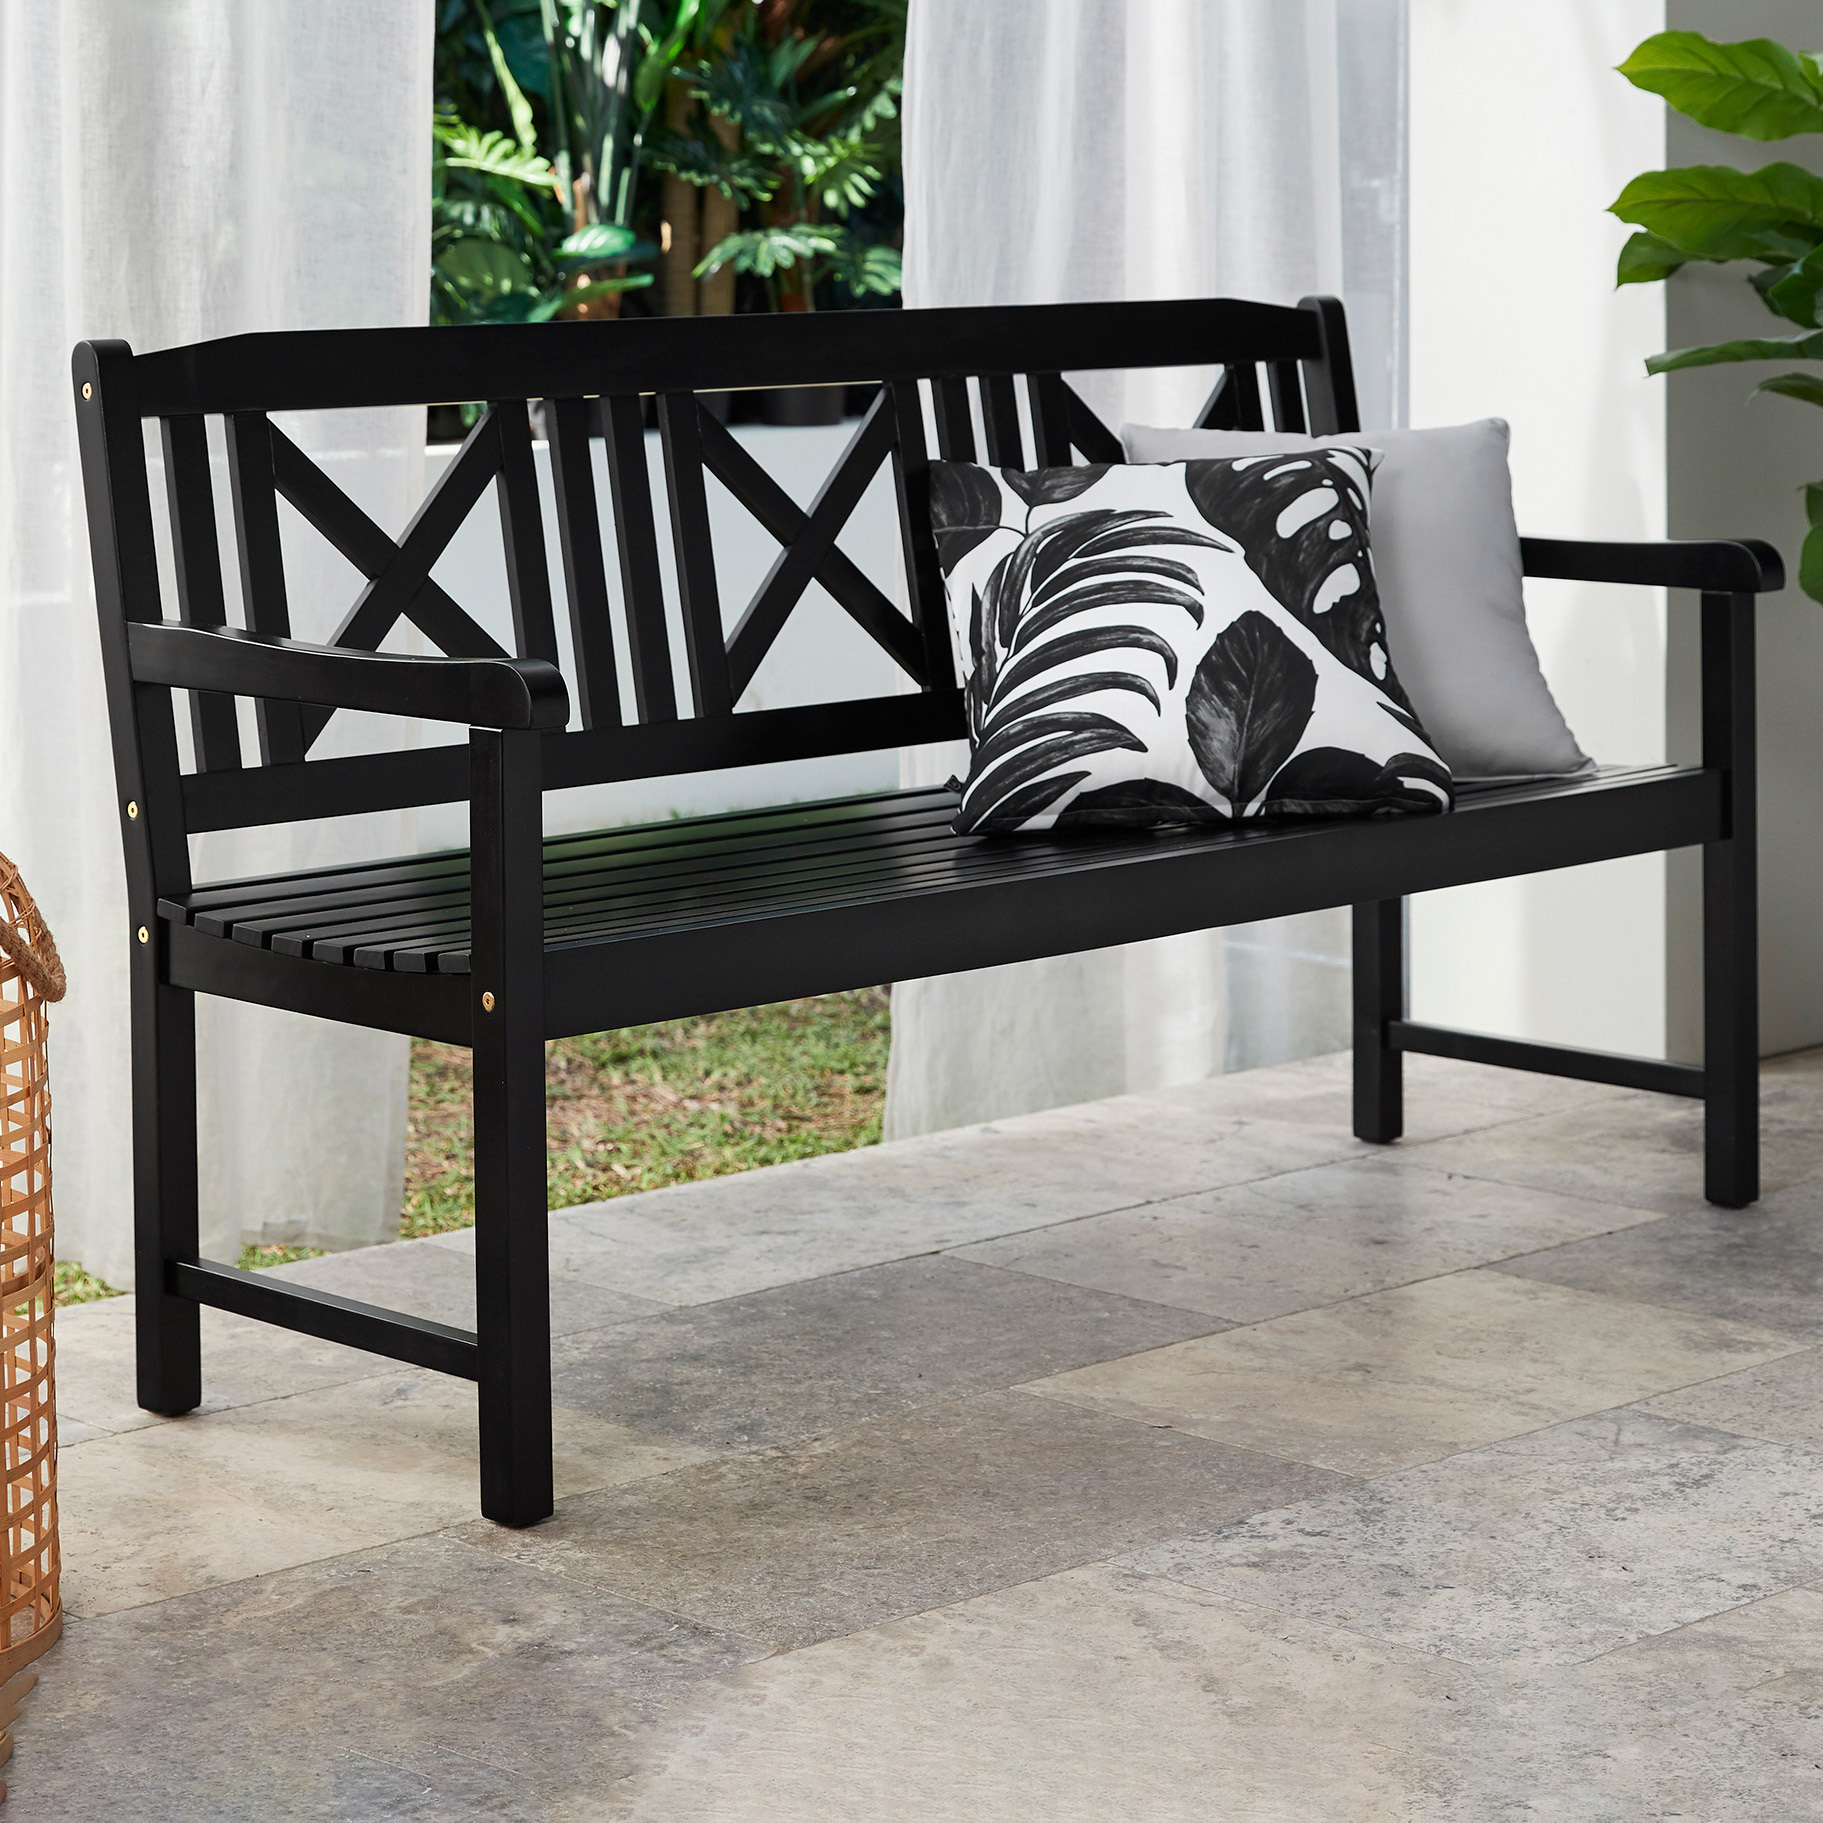 Picture of: Temple Webster Black Santa Cruz 3 Seater Acacia Wood Outdoor Bench Reviews